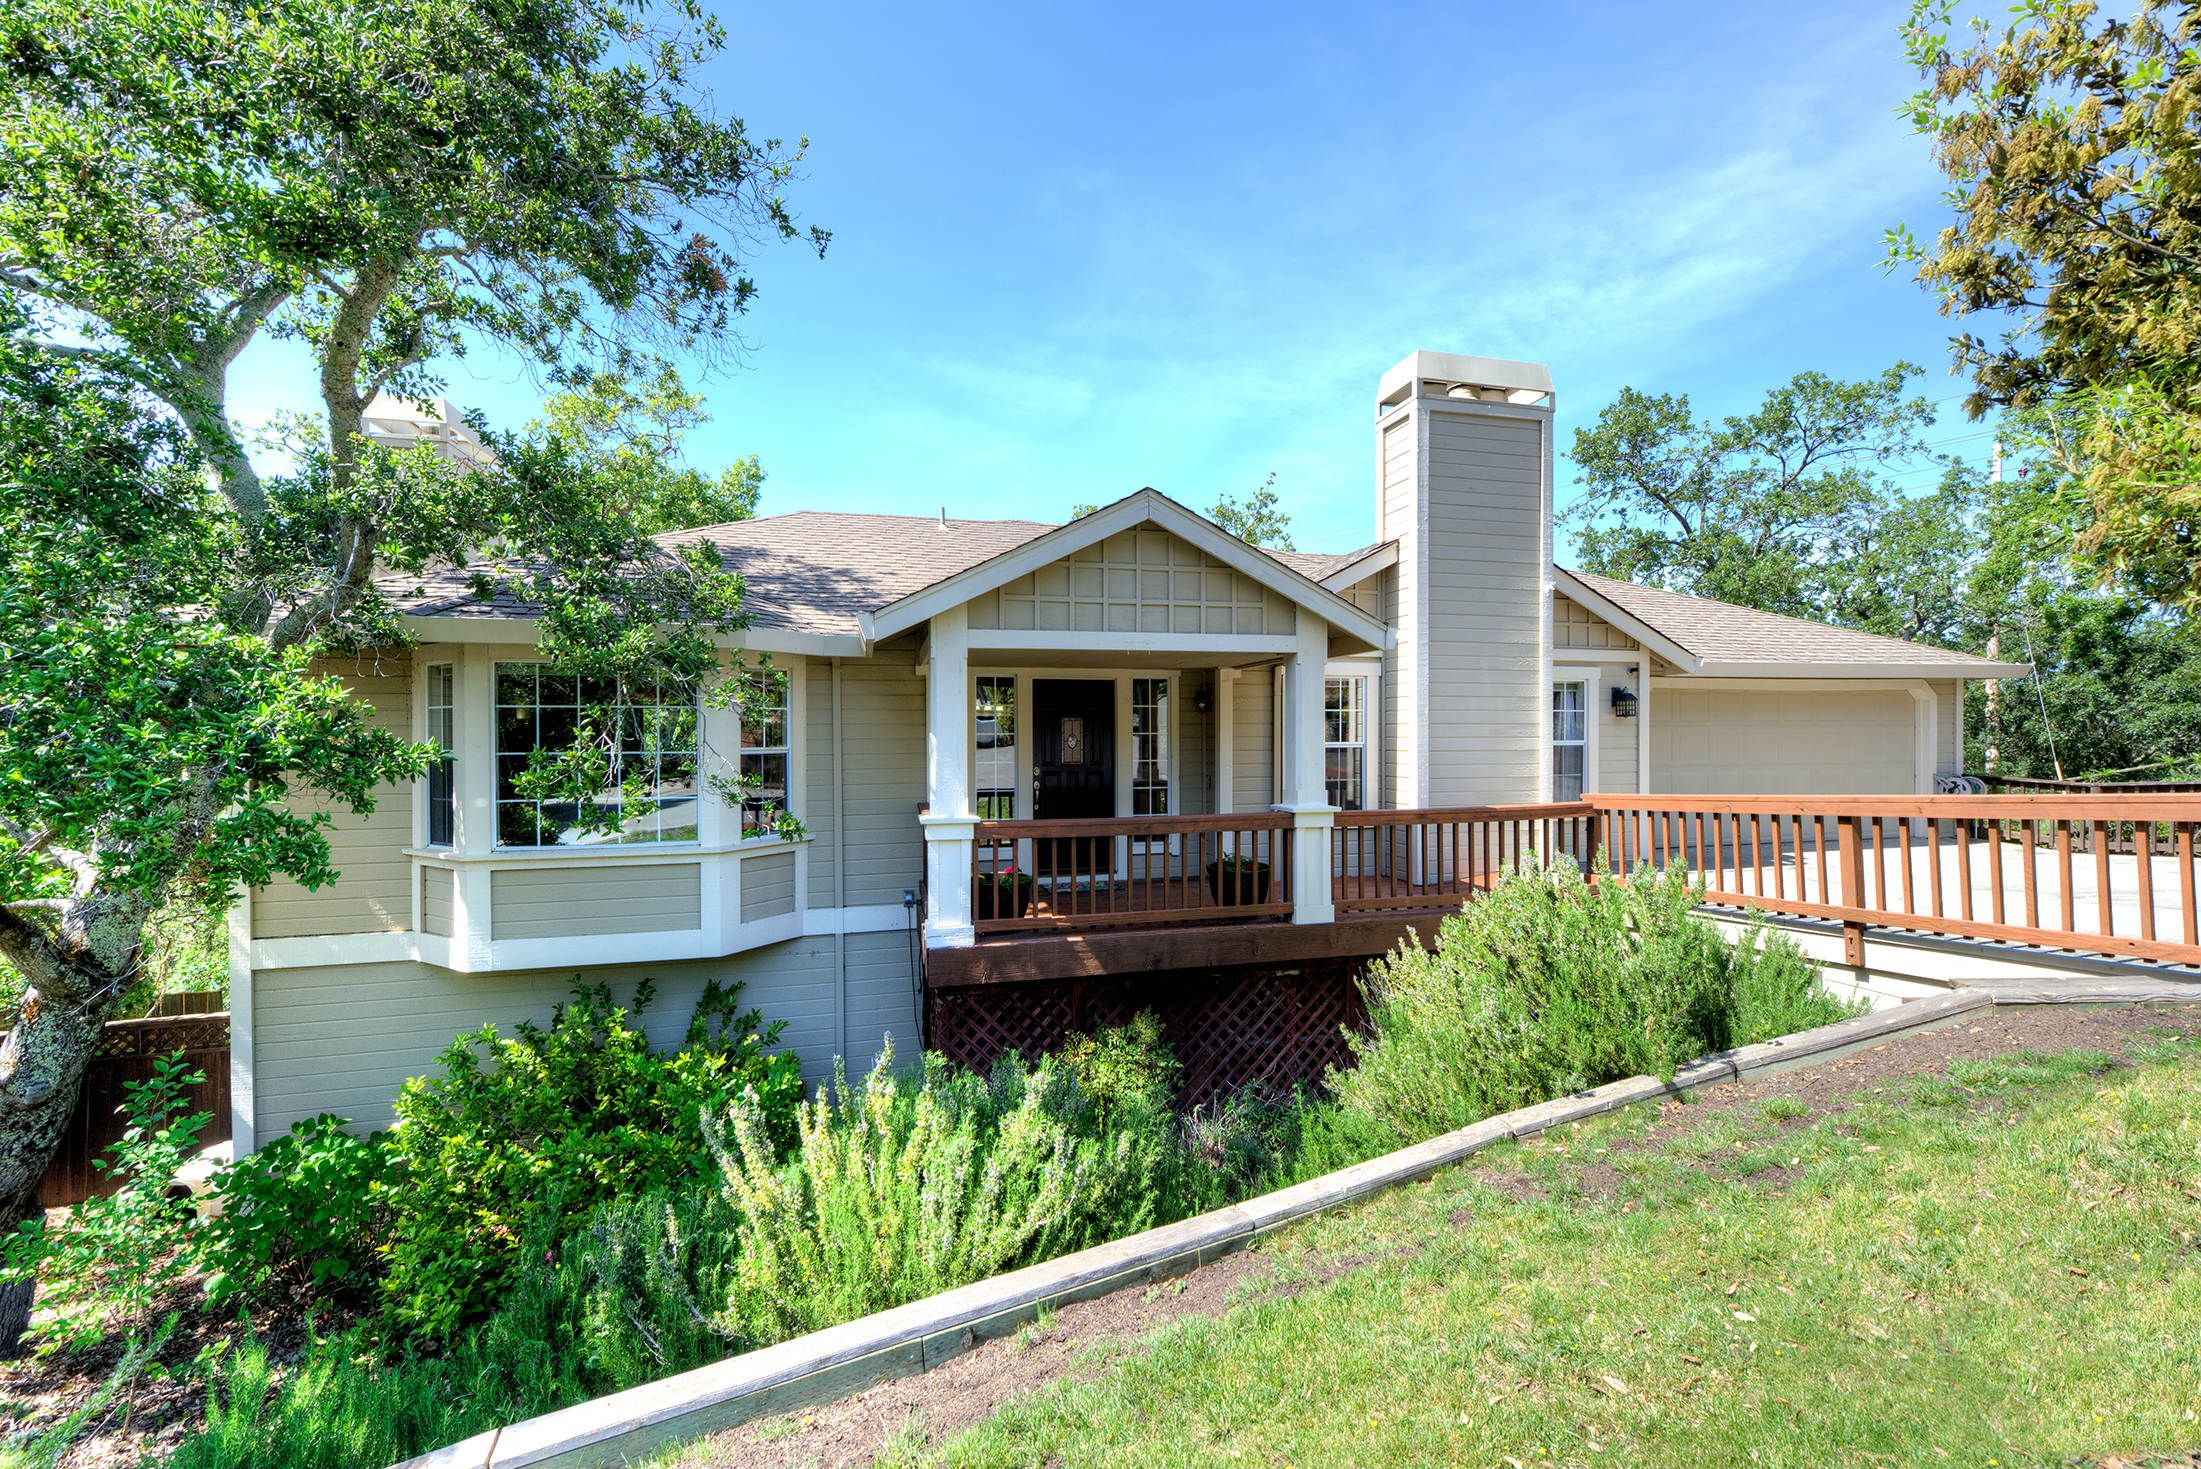 Just listed: 212 Judith Ct., Southern Novato Ignacio Valley Offered at $1,199,000 Open House: Wednesday, 4/20  10 am – 1 pm Sunday, 4/24 1 pm – 4 pm Features: 4 Bedrooms, 3.5 Baths 2,855 +/- square feet Built 1988 On quiet cul-de-sac Updated kitchen with granite and stainless fridge and dishwasher Central Air Conditioning #novato #novatoca #novatorealestate #novatohomes #marincounty #marinrealestate